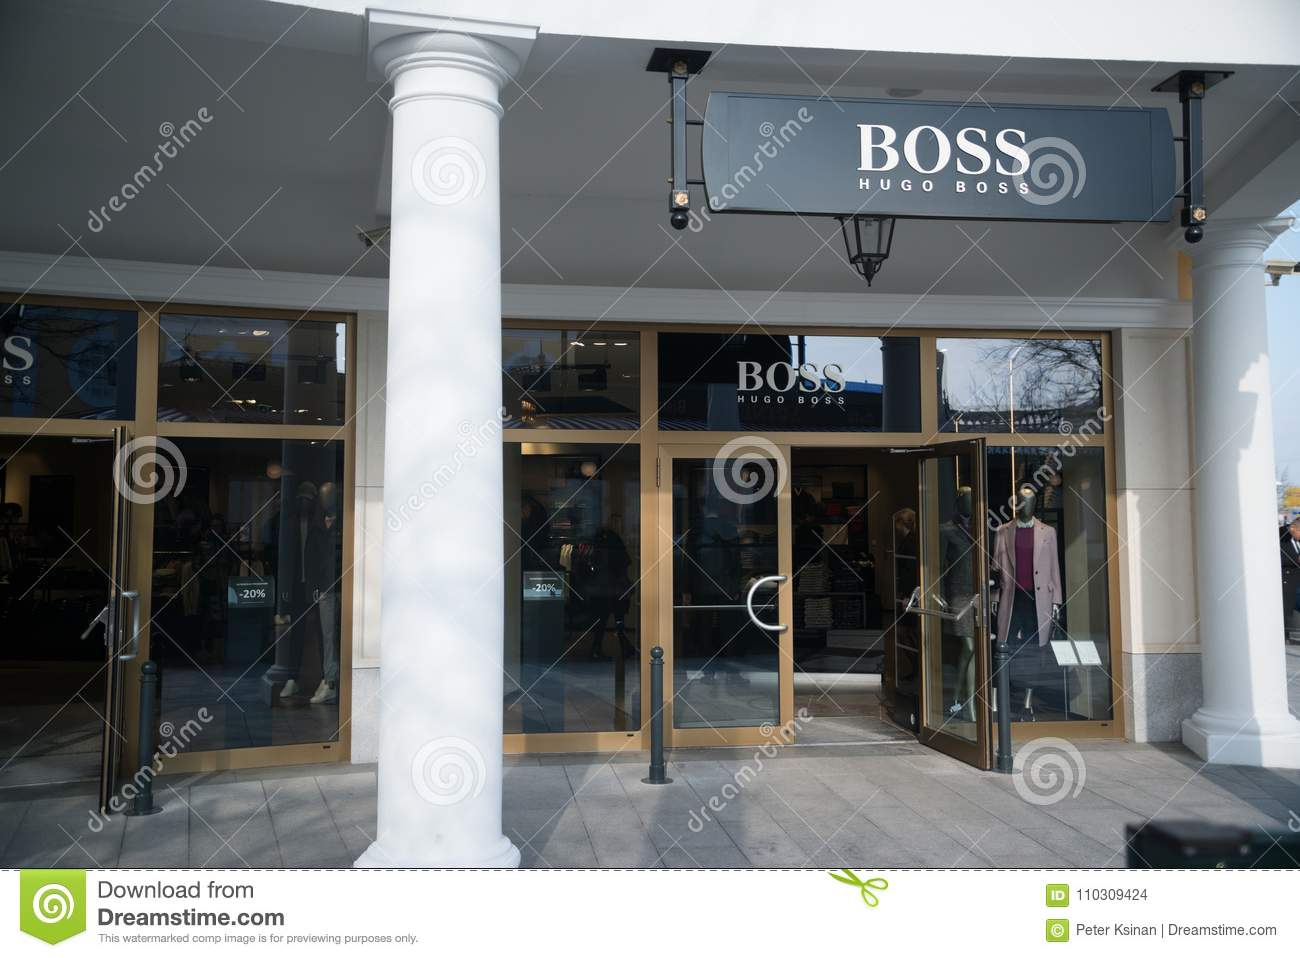 c7a4ff5b4 Hugo Boss is a German luxury fashion house. It was founded in 1924 by Hugo  Boss and is headquartered in Metzingen, Germany.